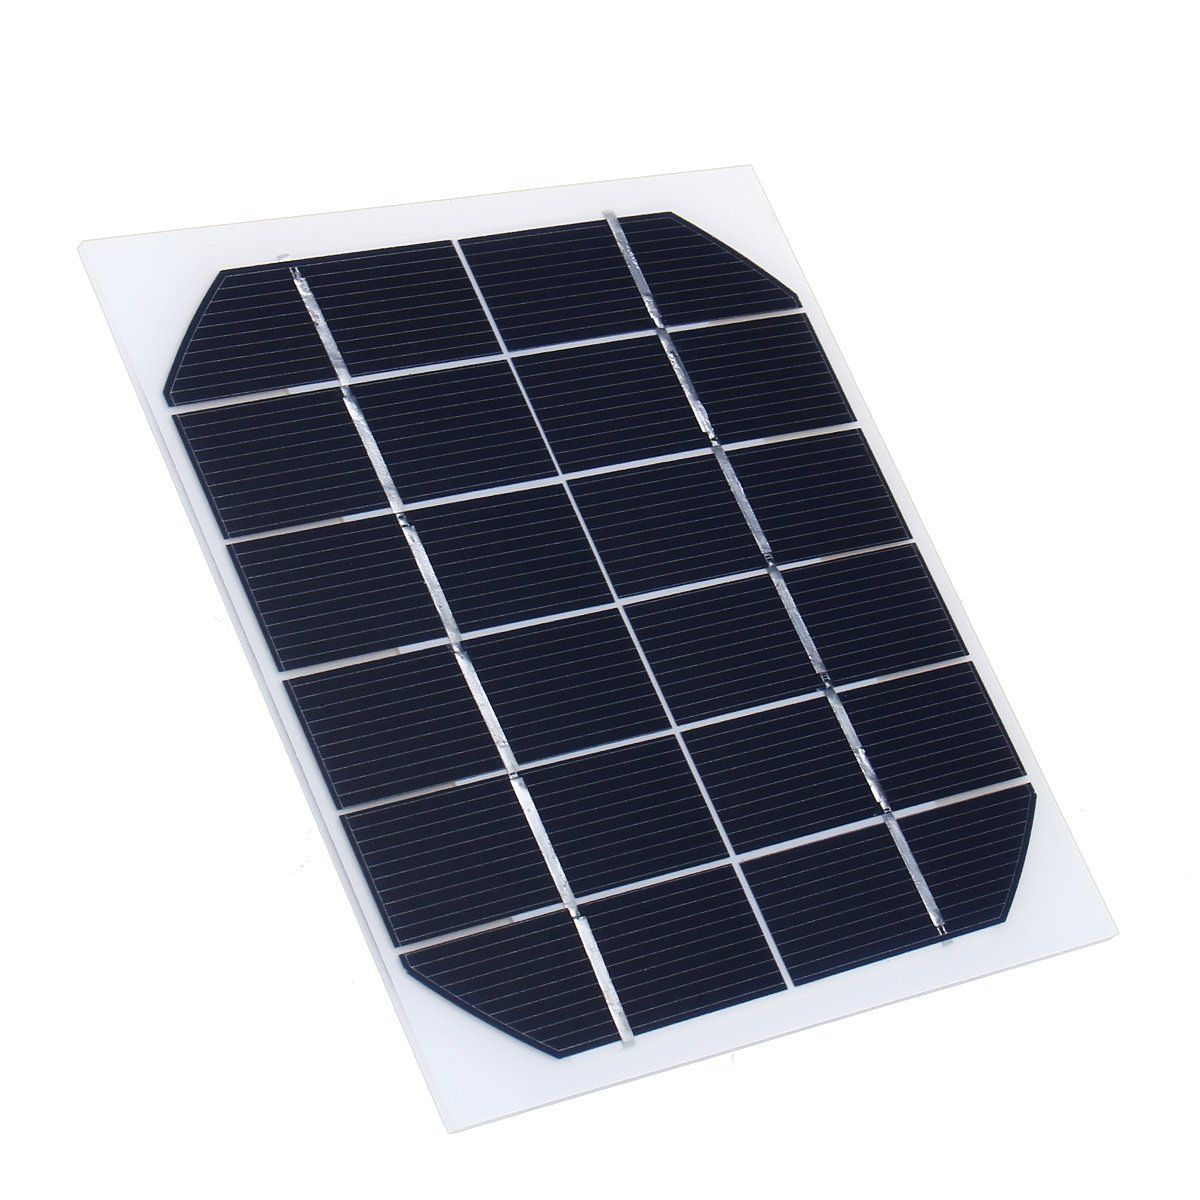 5pcs 6v 350ma Monocrystalline 2w Mini Solar Panel Photovoltaic Panel Mini Solar Panel Photovoltaic Panels Solar Panels For Home